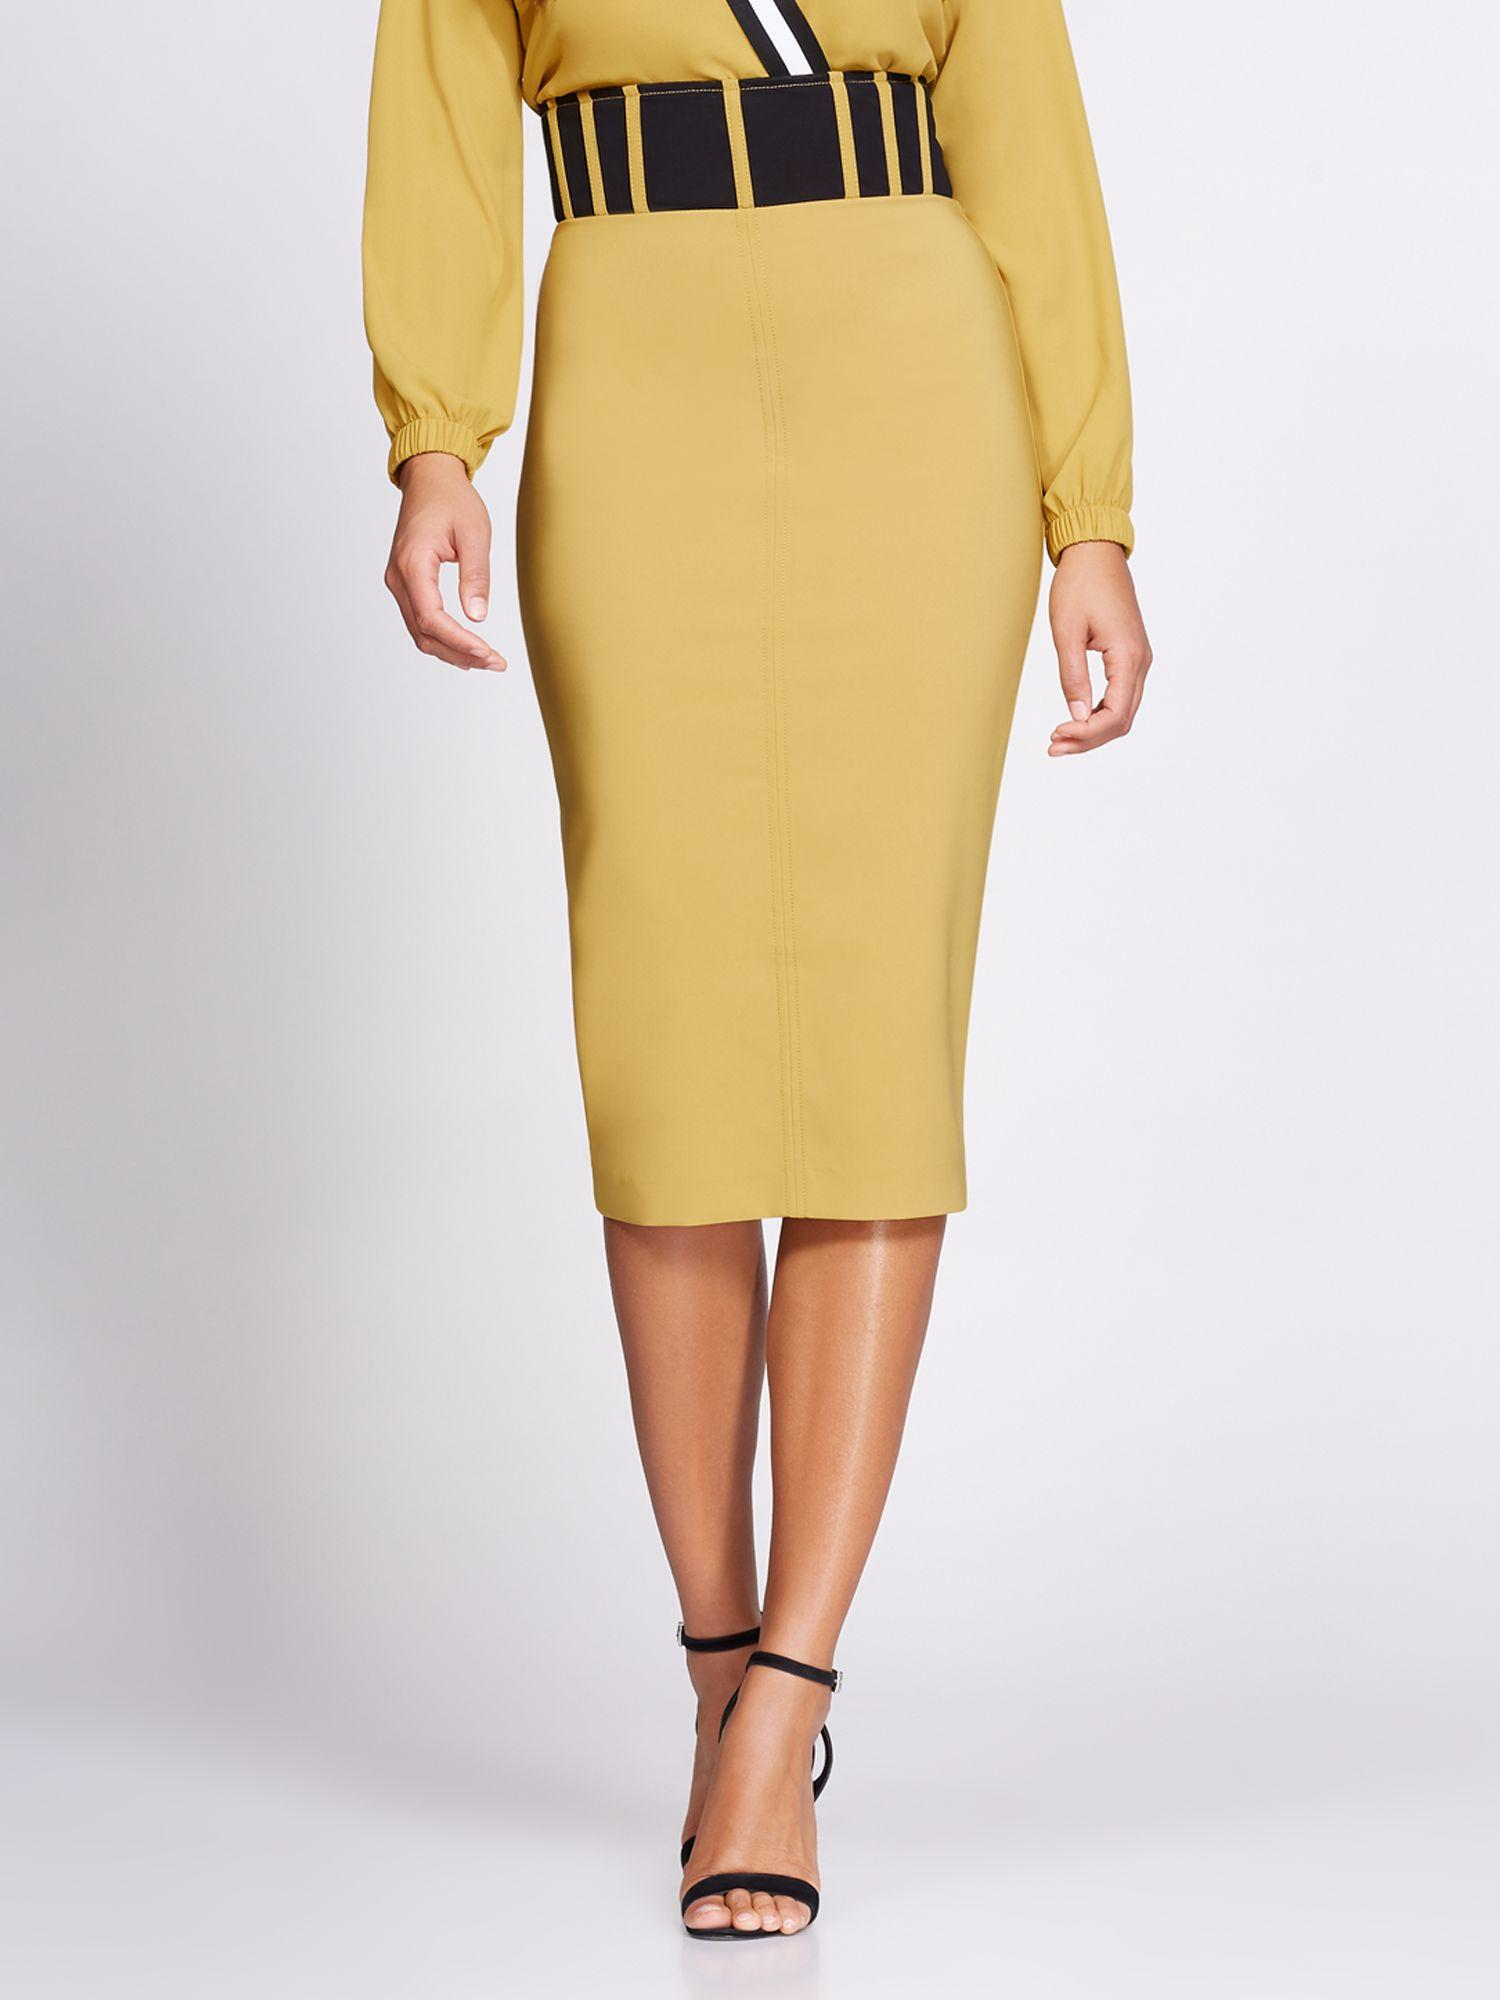 c9ae57c86f New York   Company. Women s Yellow Corset Pencil Skirt - Gabrielle Union  Collection